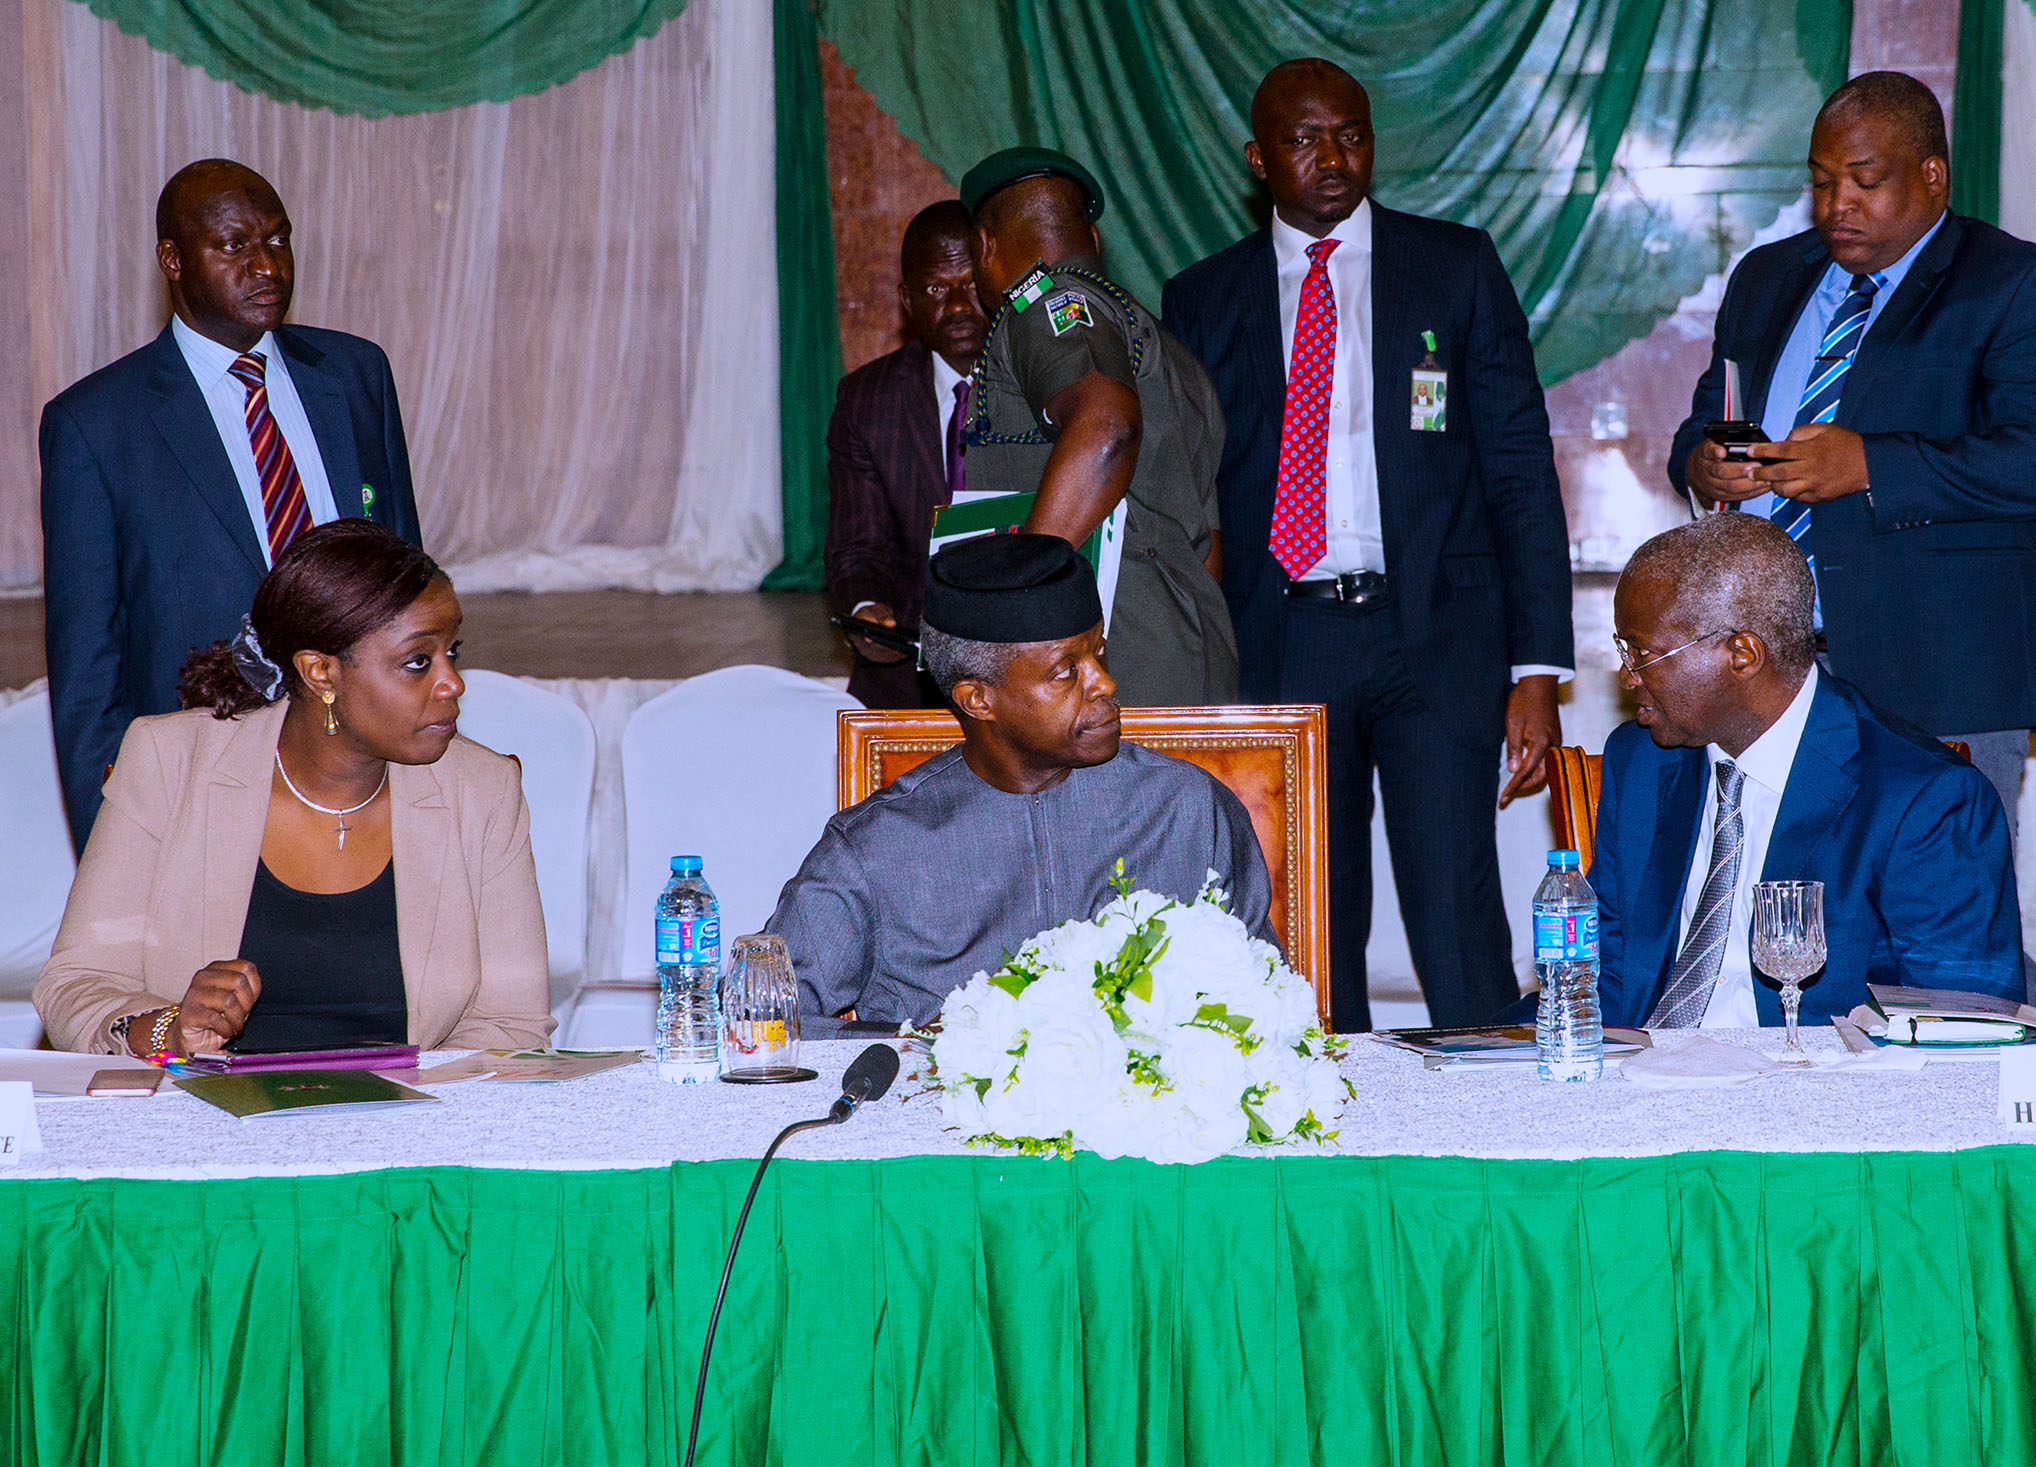 AG PRESIDENT OSINBAJO PRESIDES OVER QUARTERLY BIZ FORUM 4. Acting President Yemi Osinbajo SAN (M) flanked by Minister of Power, Works and Housing, Babatunde Fashola and Minister of Finance, Kemi Adesoun at the Presidential Quarterly Business Forum held at the Banquet hall of the Presidential Villa in Abuja. PHOTO; SUNDAY AGHAEZE. JULY 11 2017.